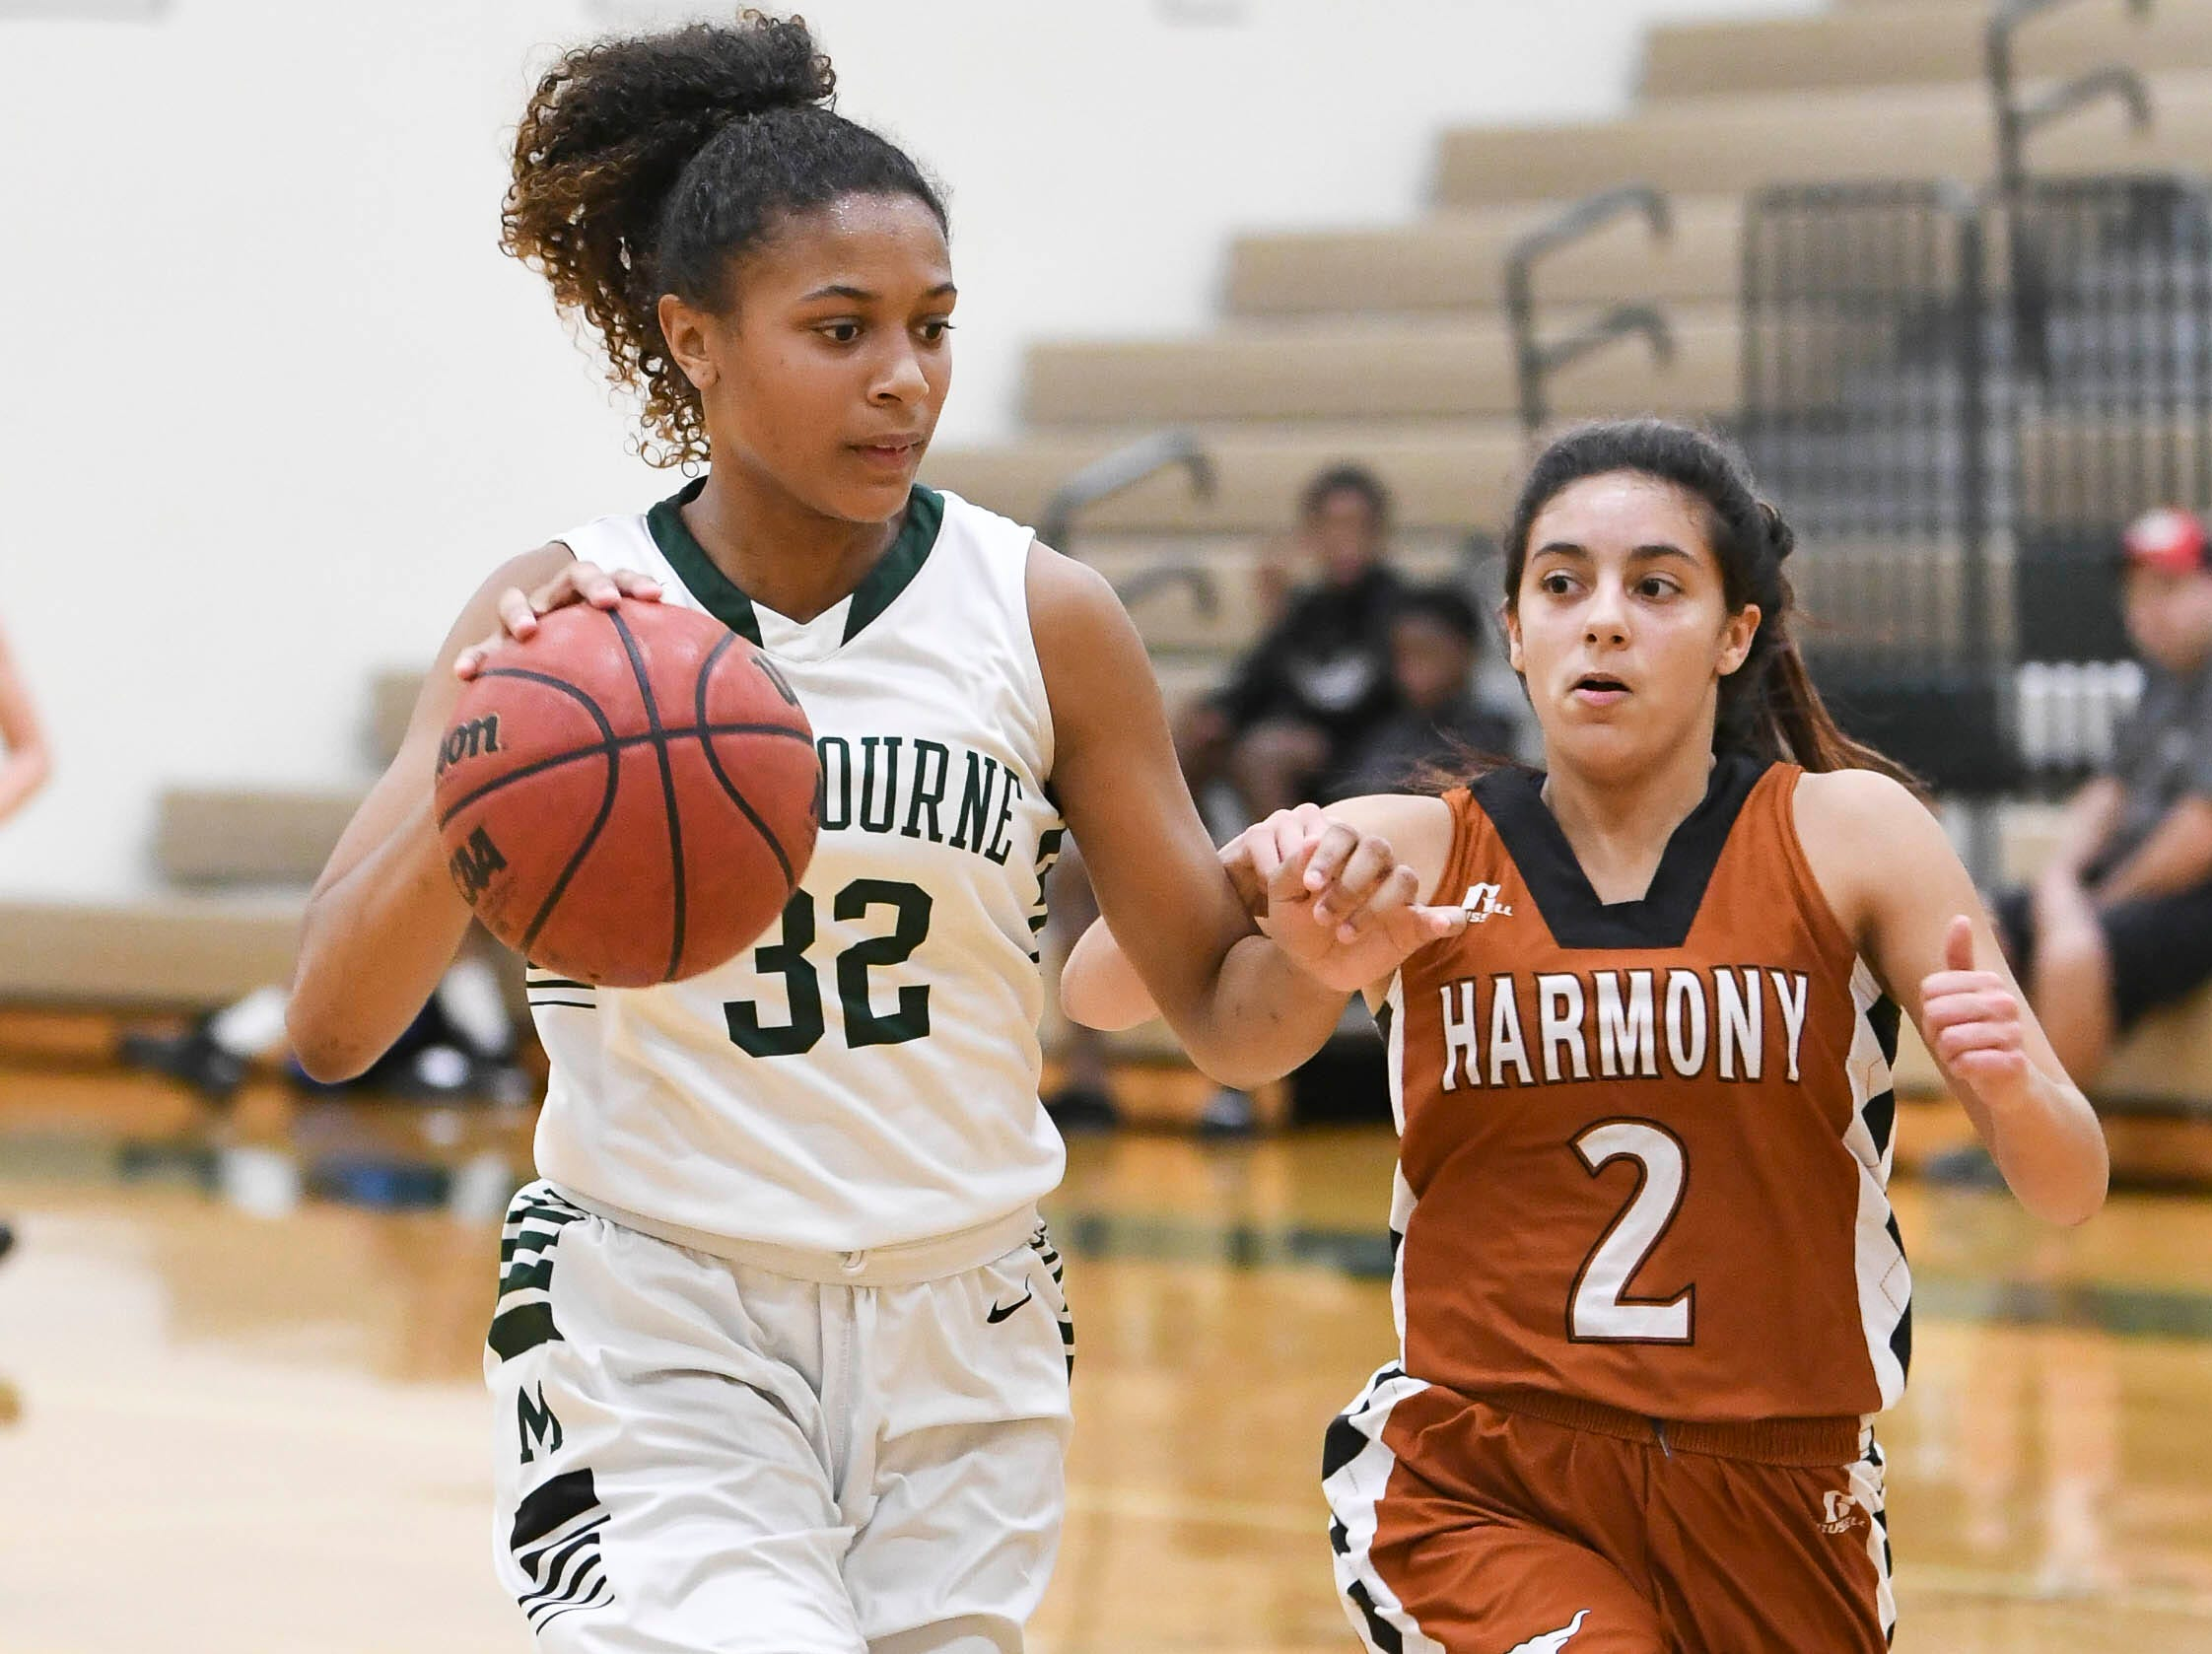 Melbourne's Makayla Morin drives to the basket past Andrea Santiago of Heritage during Tuesday's game at Melbourne High.